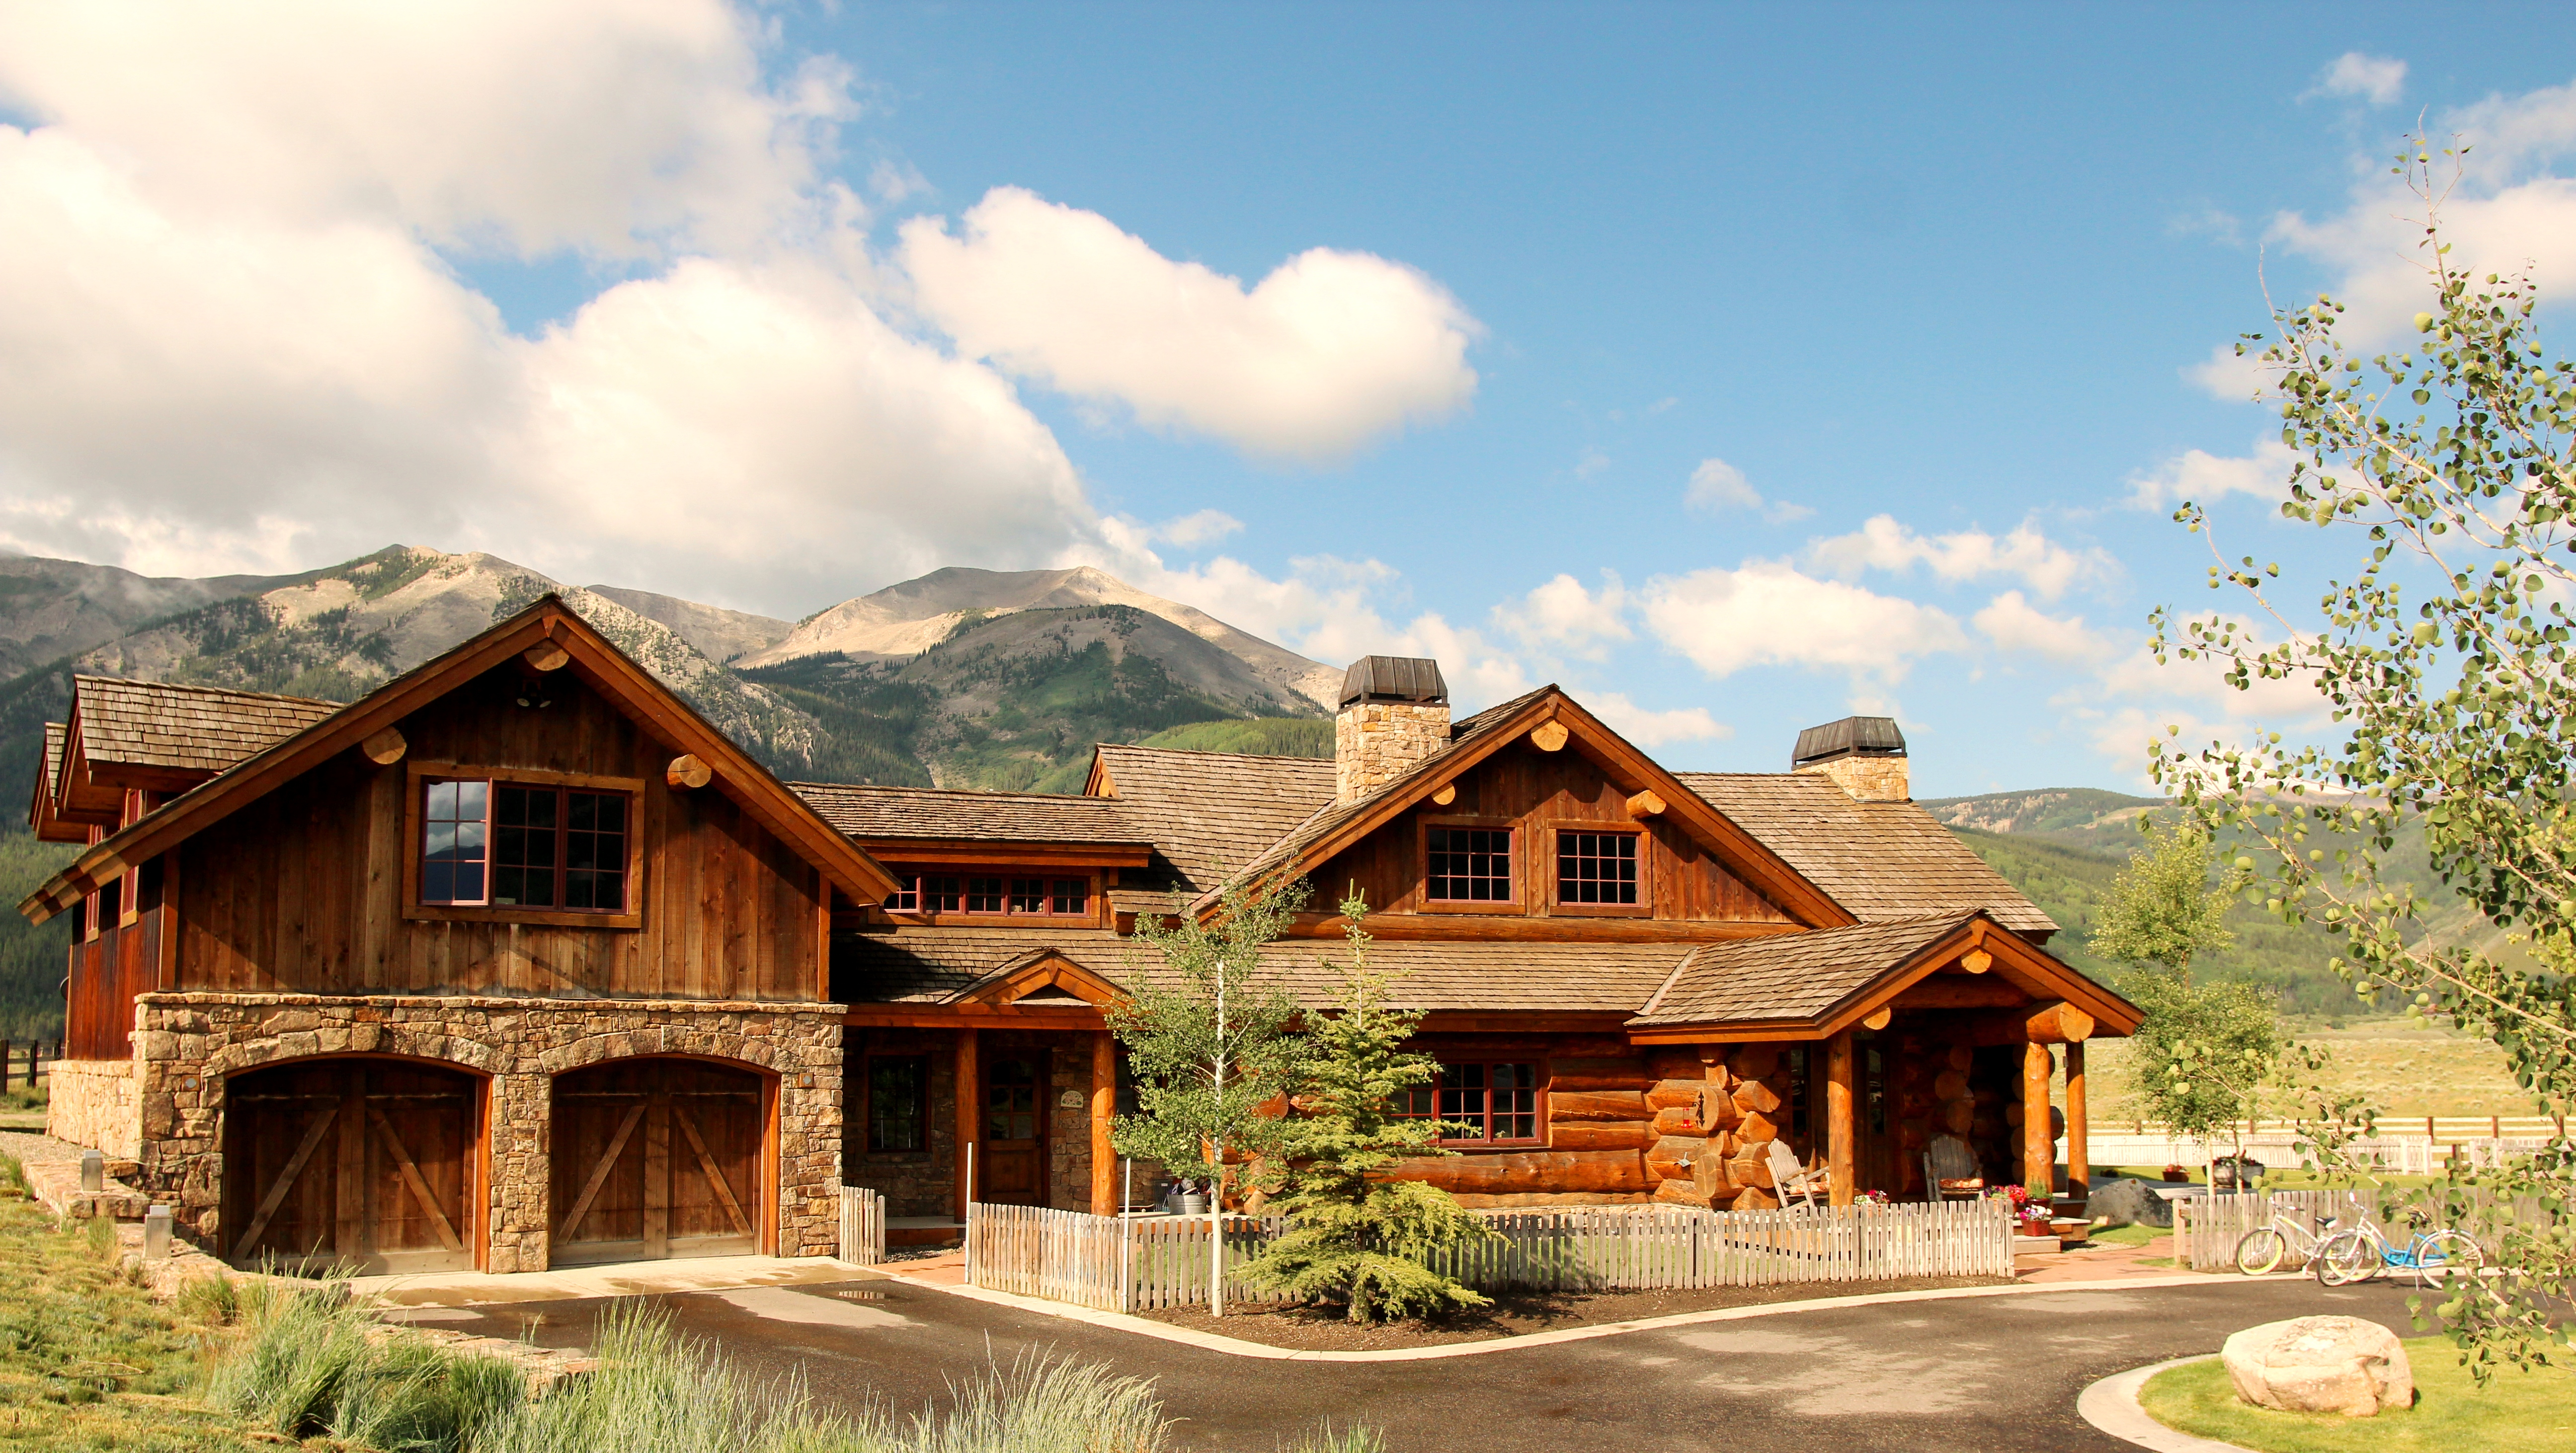 Luxury Log Home Located Just Outside of Crested Butte on 6 + Acres